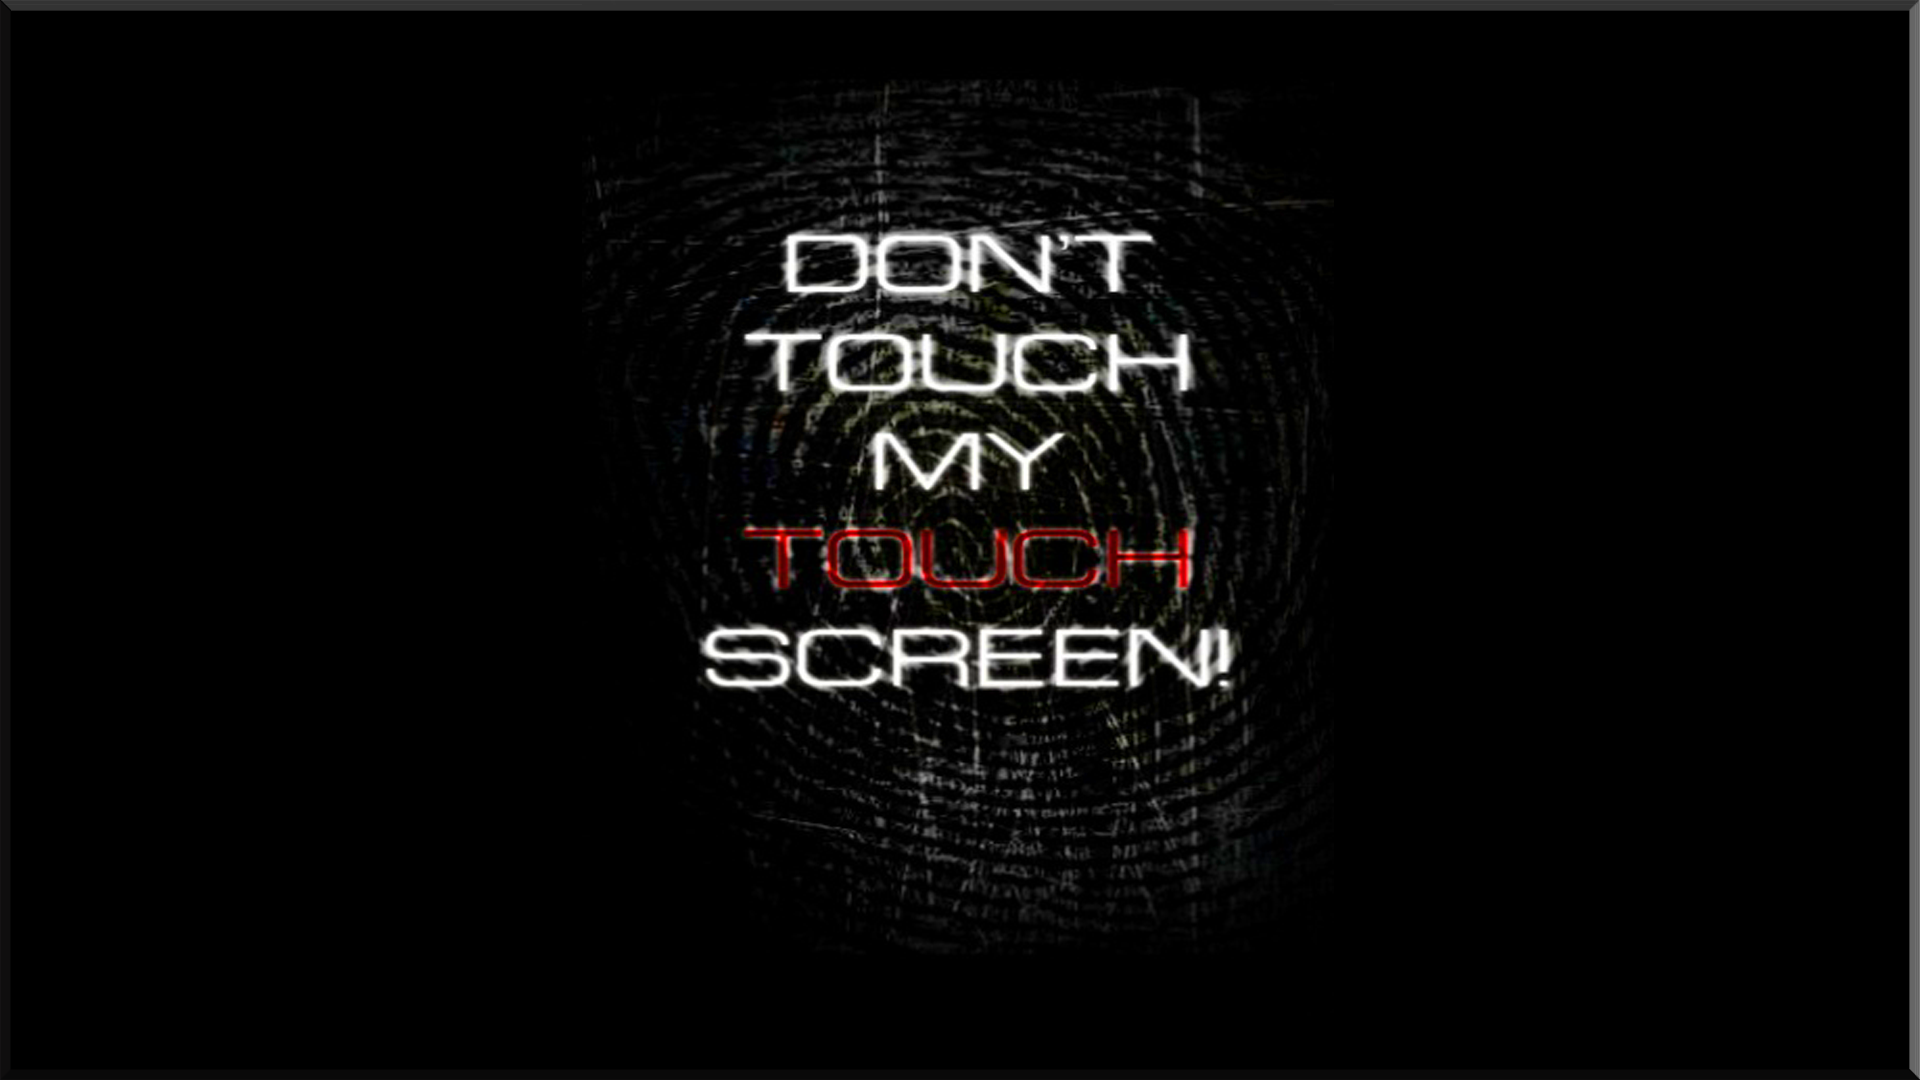 My Ford Touch Screen Is Black >> Home Screen Wallpaper Laptop - WallpaperSafari